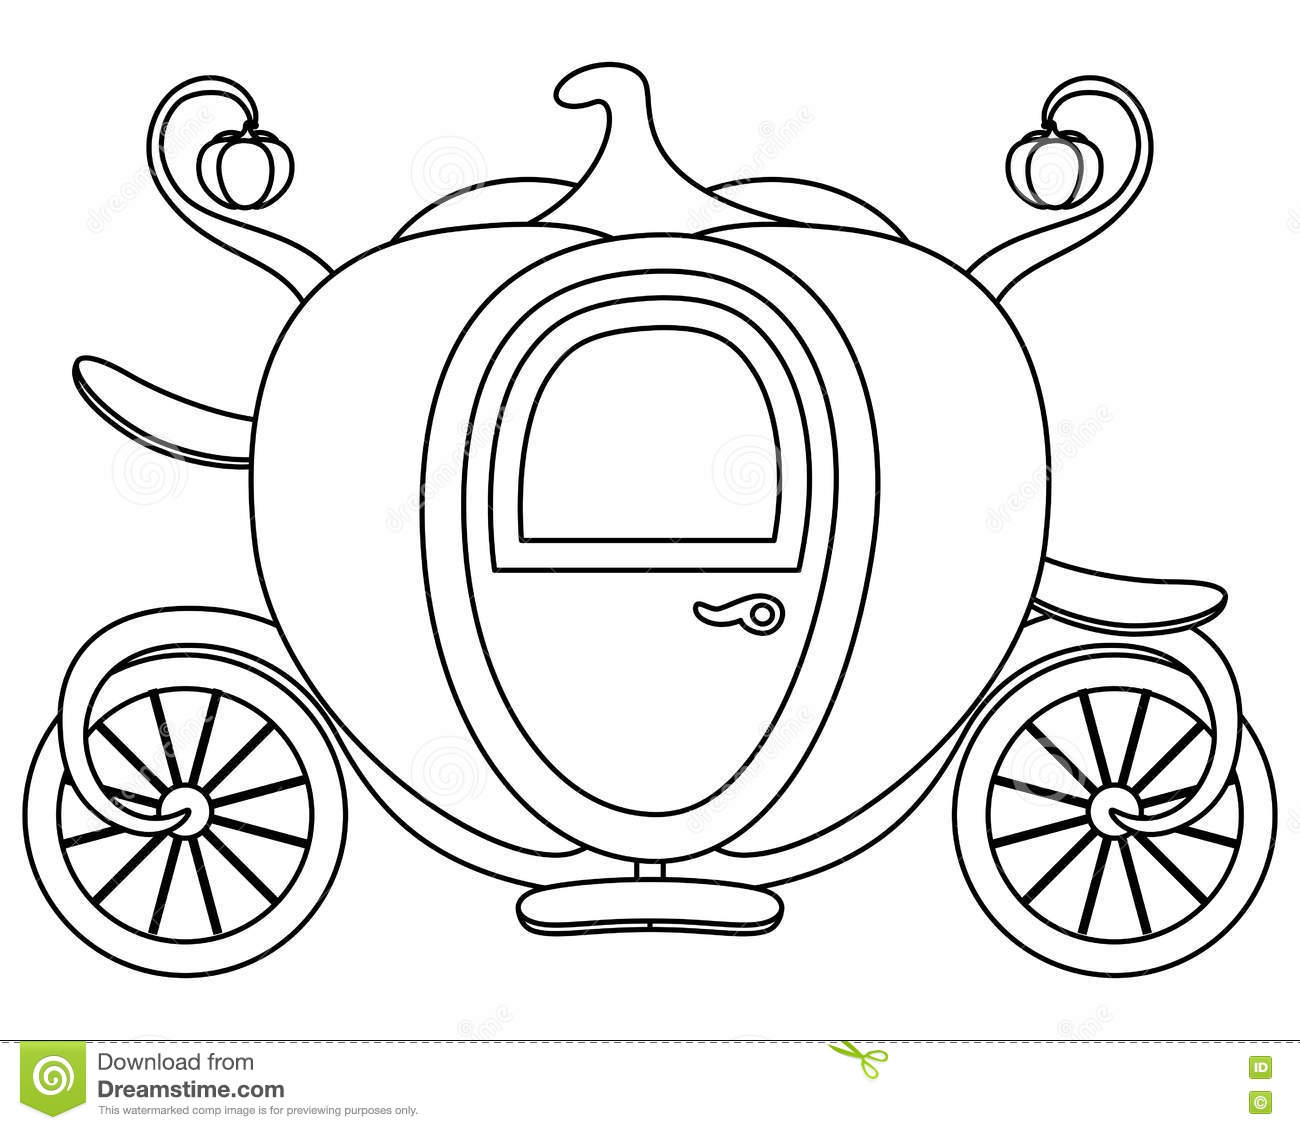 Coloring pictures cinderella - Coloring Pumpkin Cinderella S Carriage